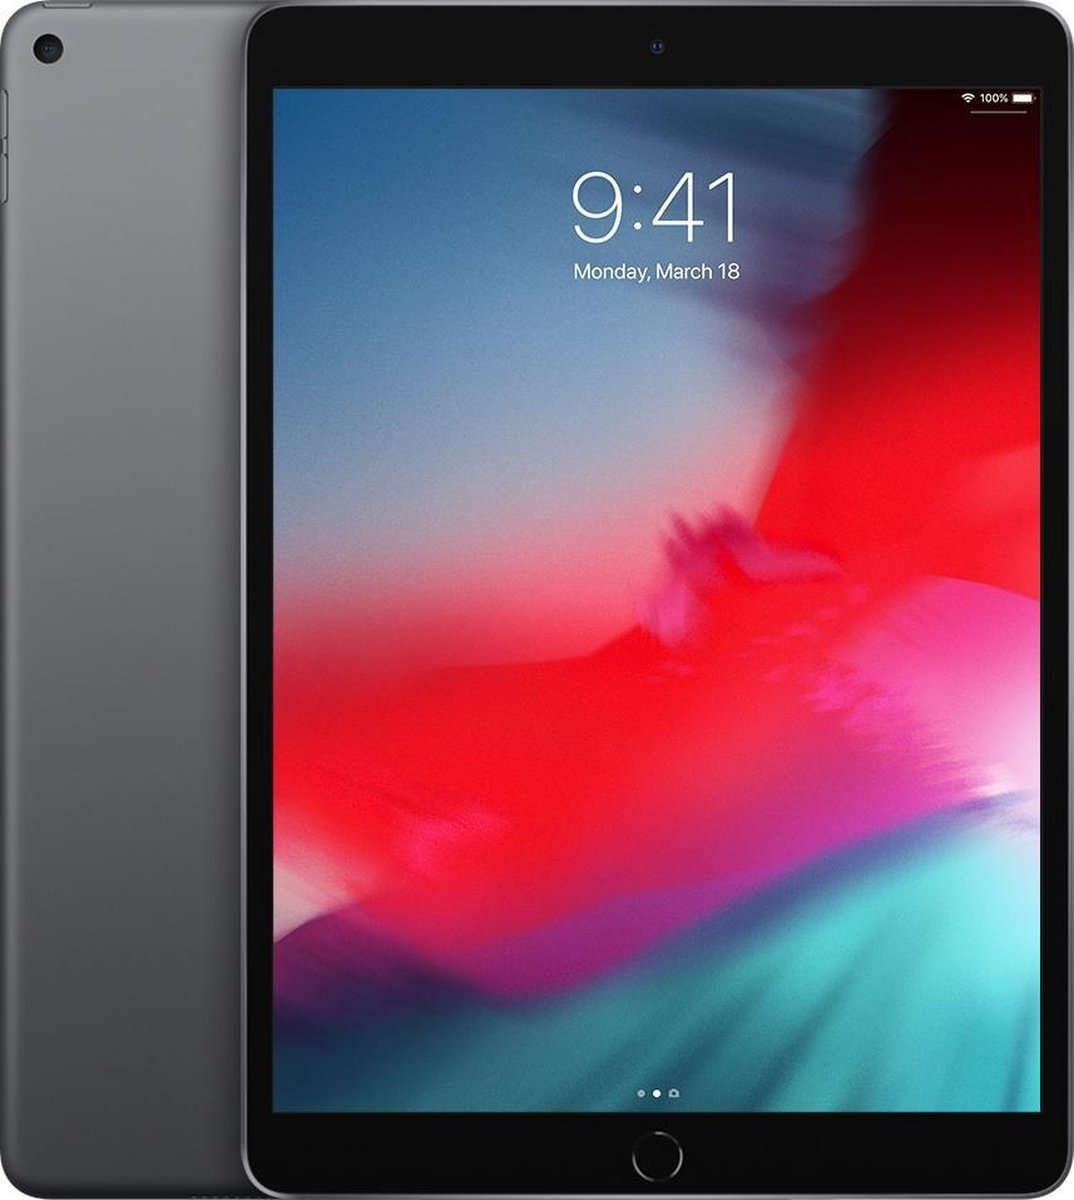 Forza Refurbished iPad Air 2019 64GB Space Gray Wifi only - B grade